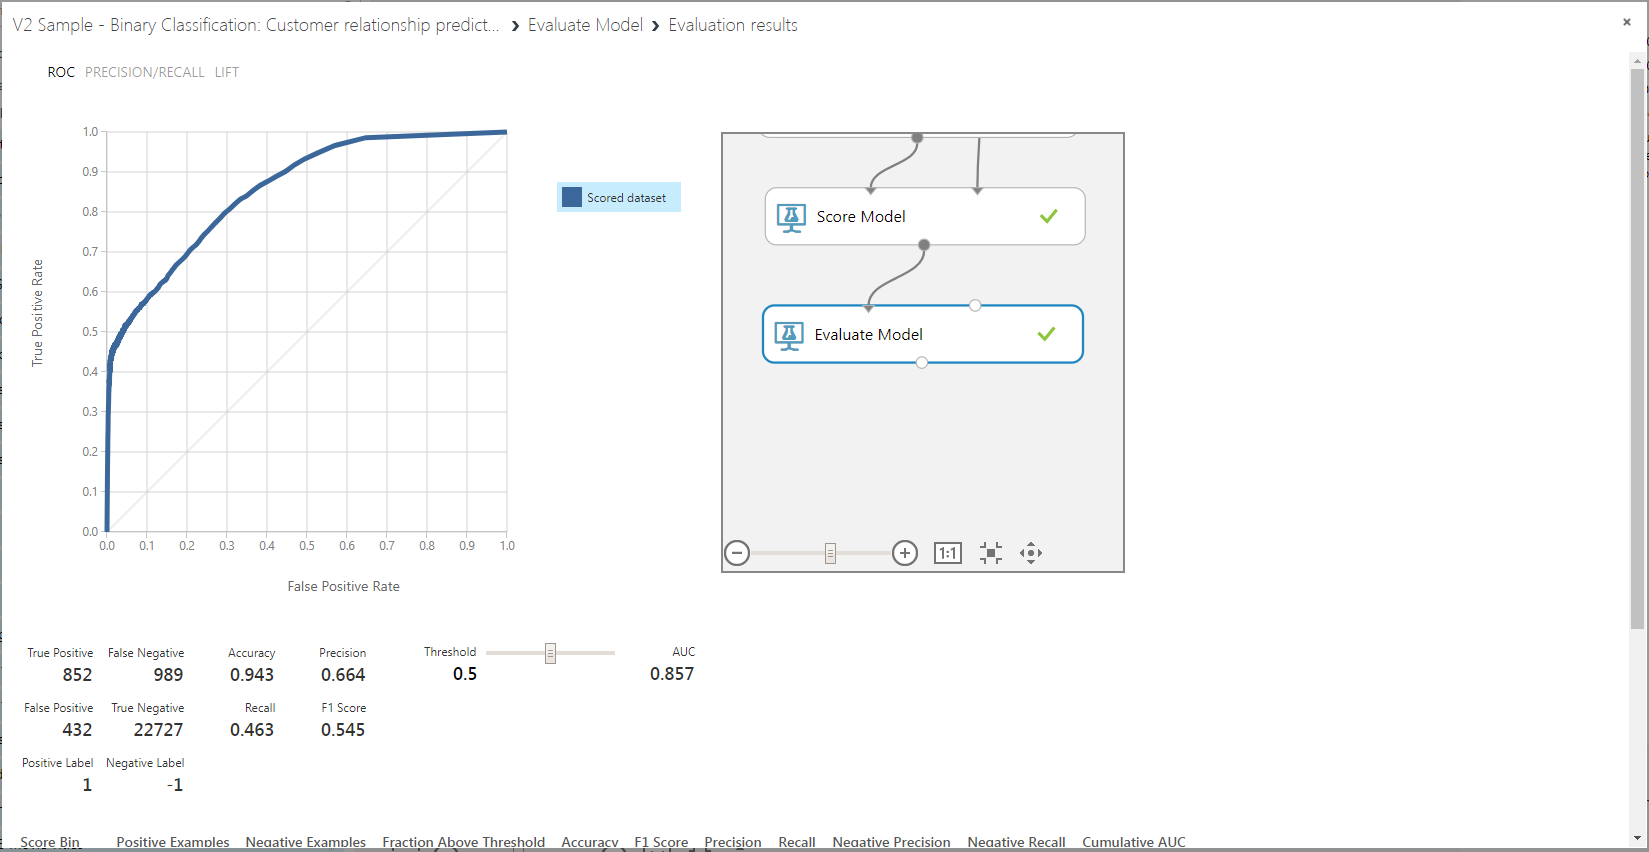 Visual interface example #5: Classification to predict churn